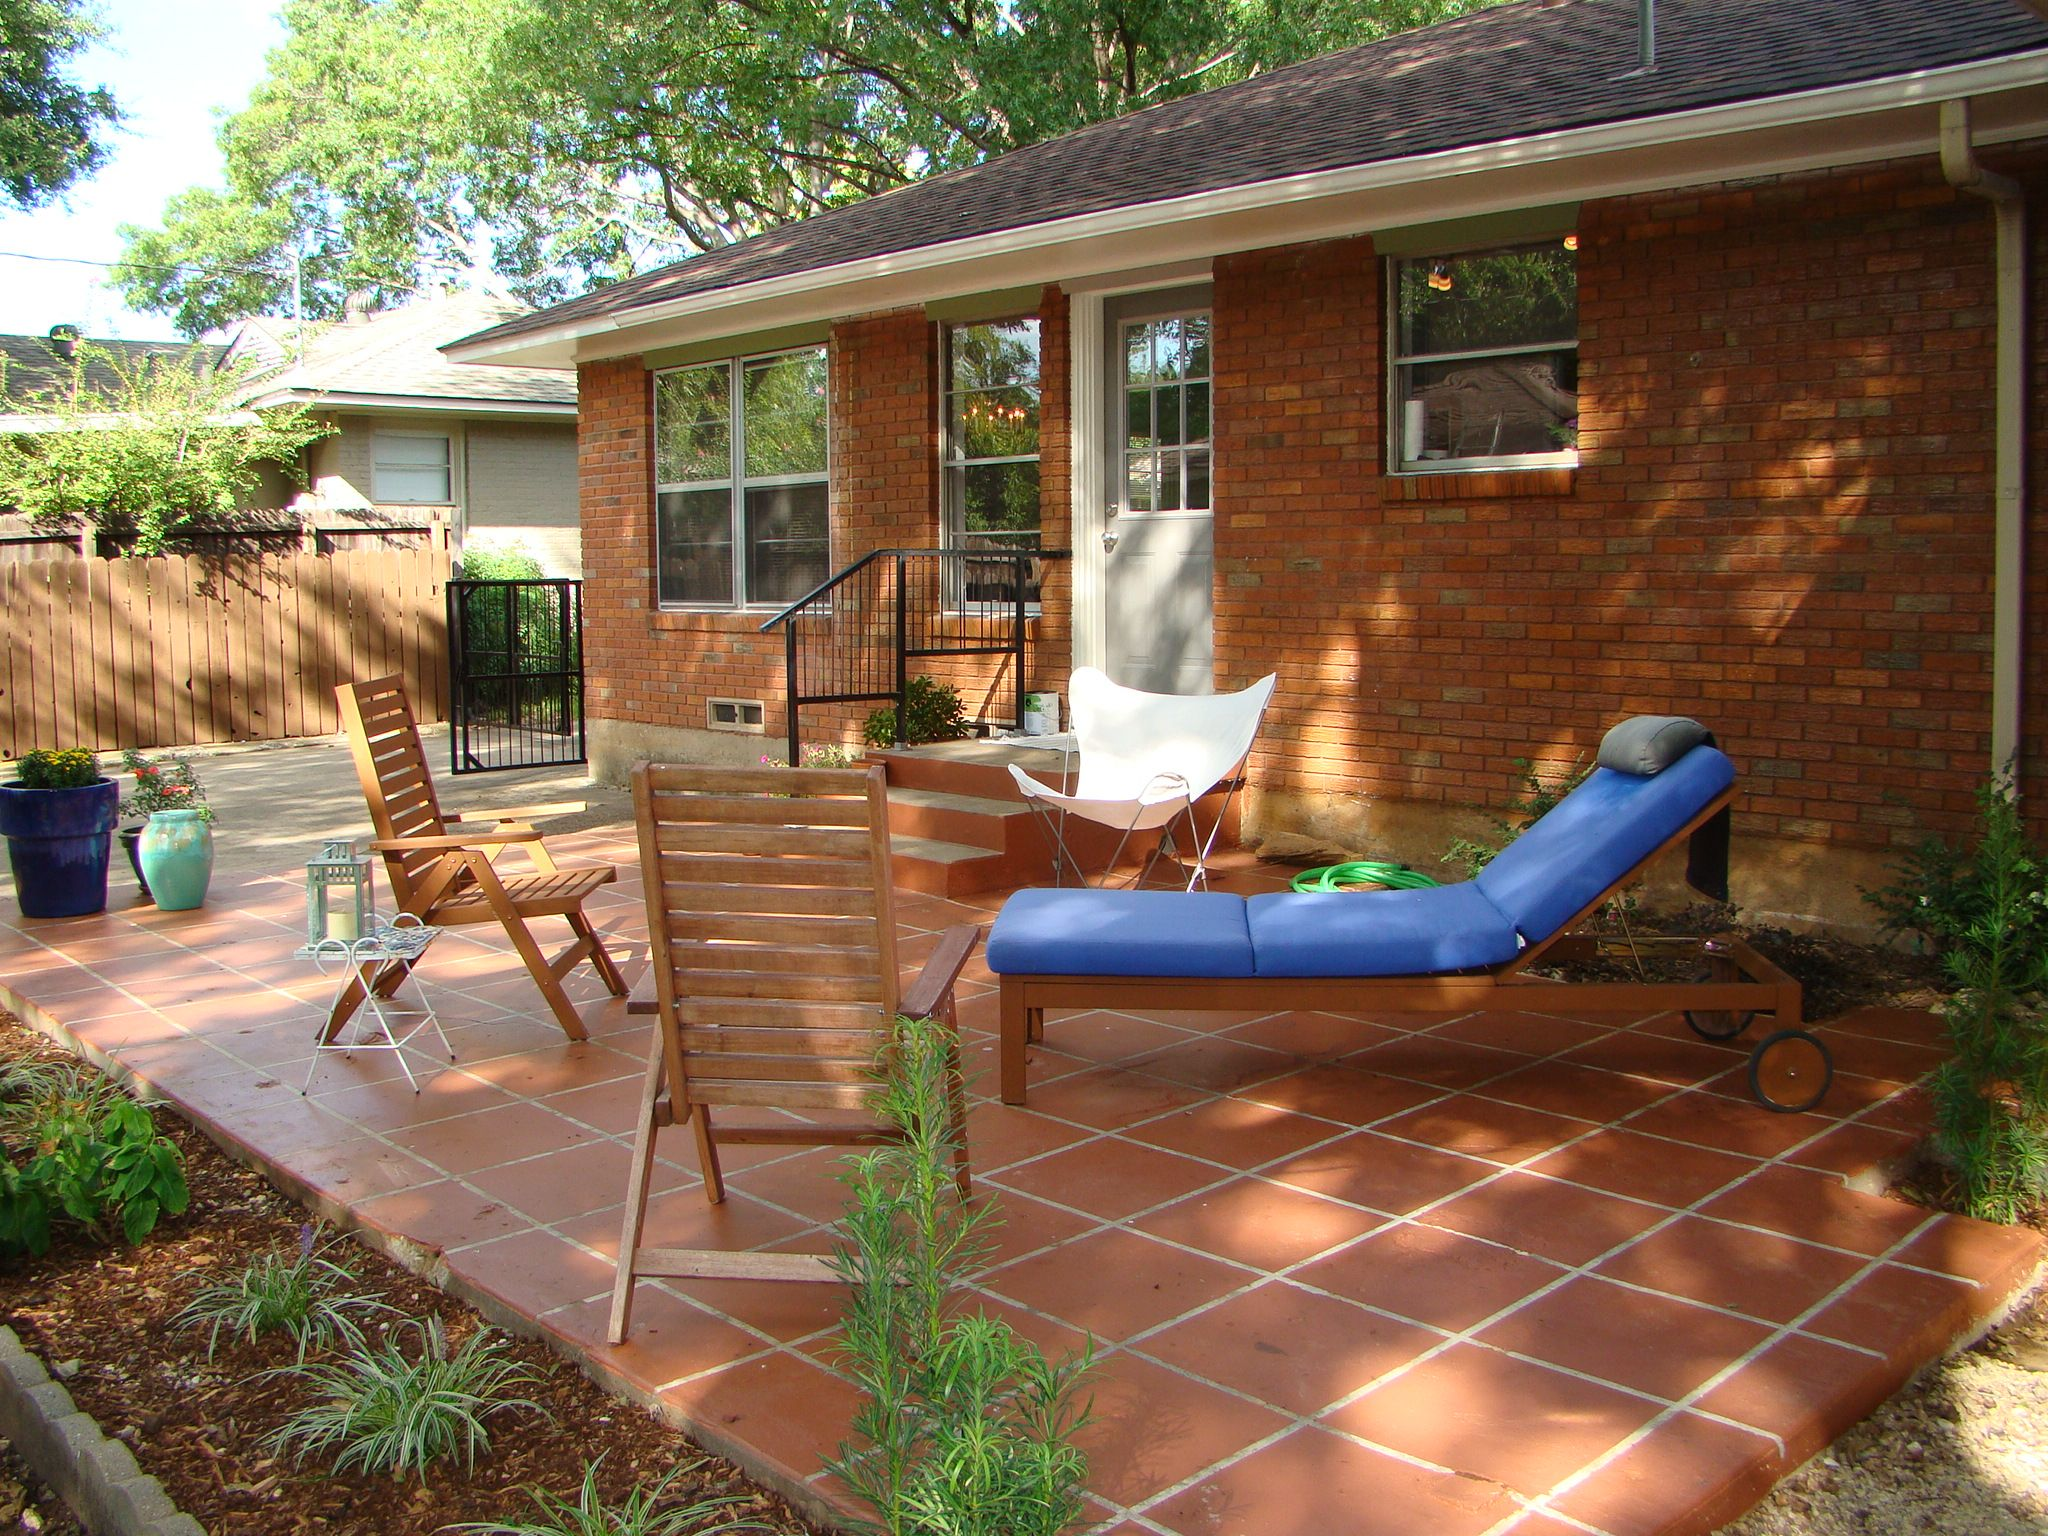 an old sunroom addition was removed leaving a large slab, painted to appear as terra cotta tiles